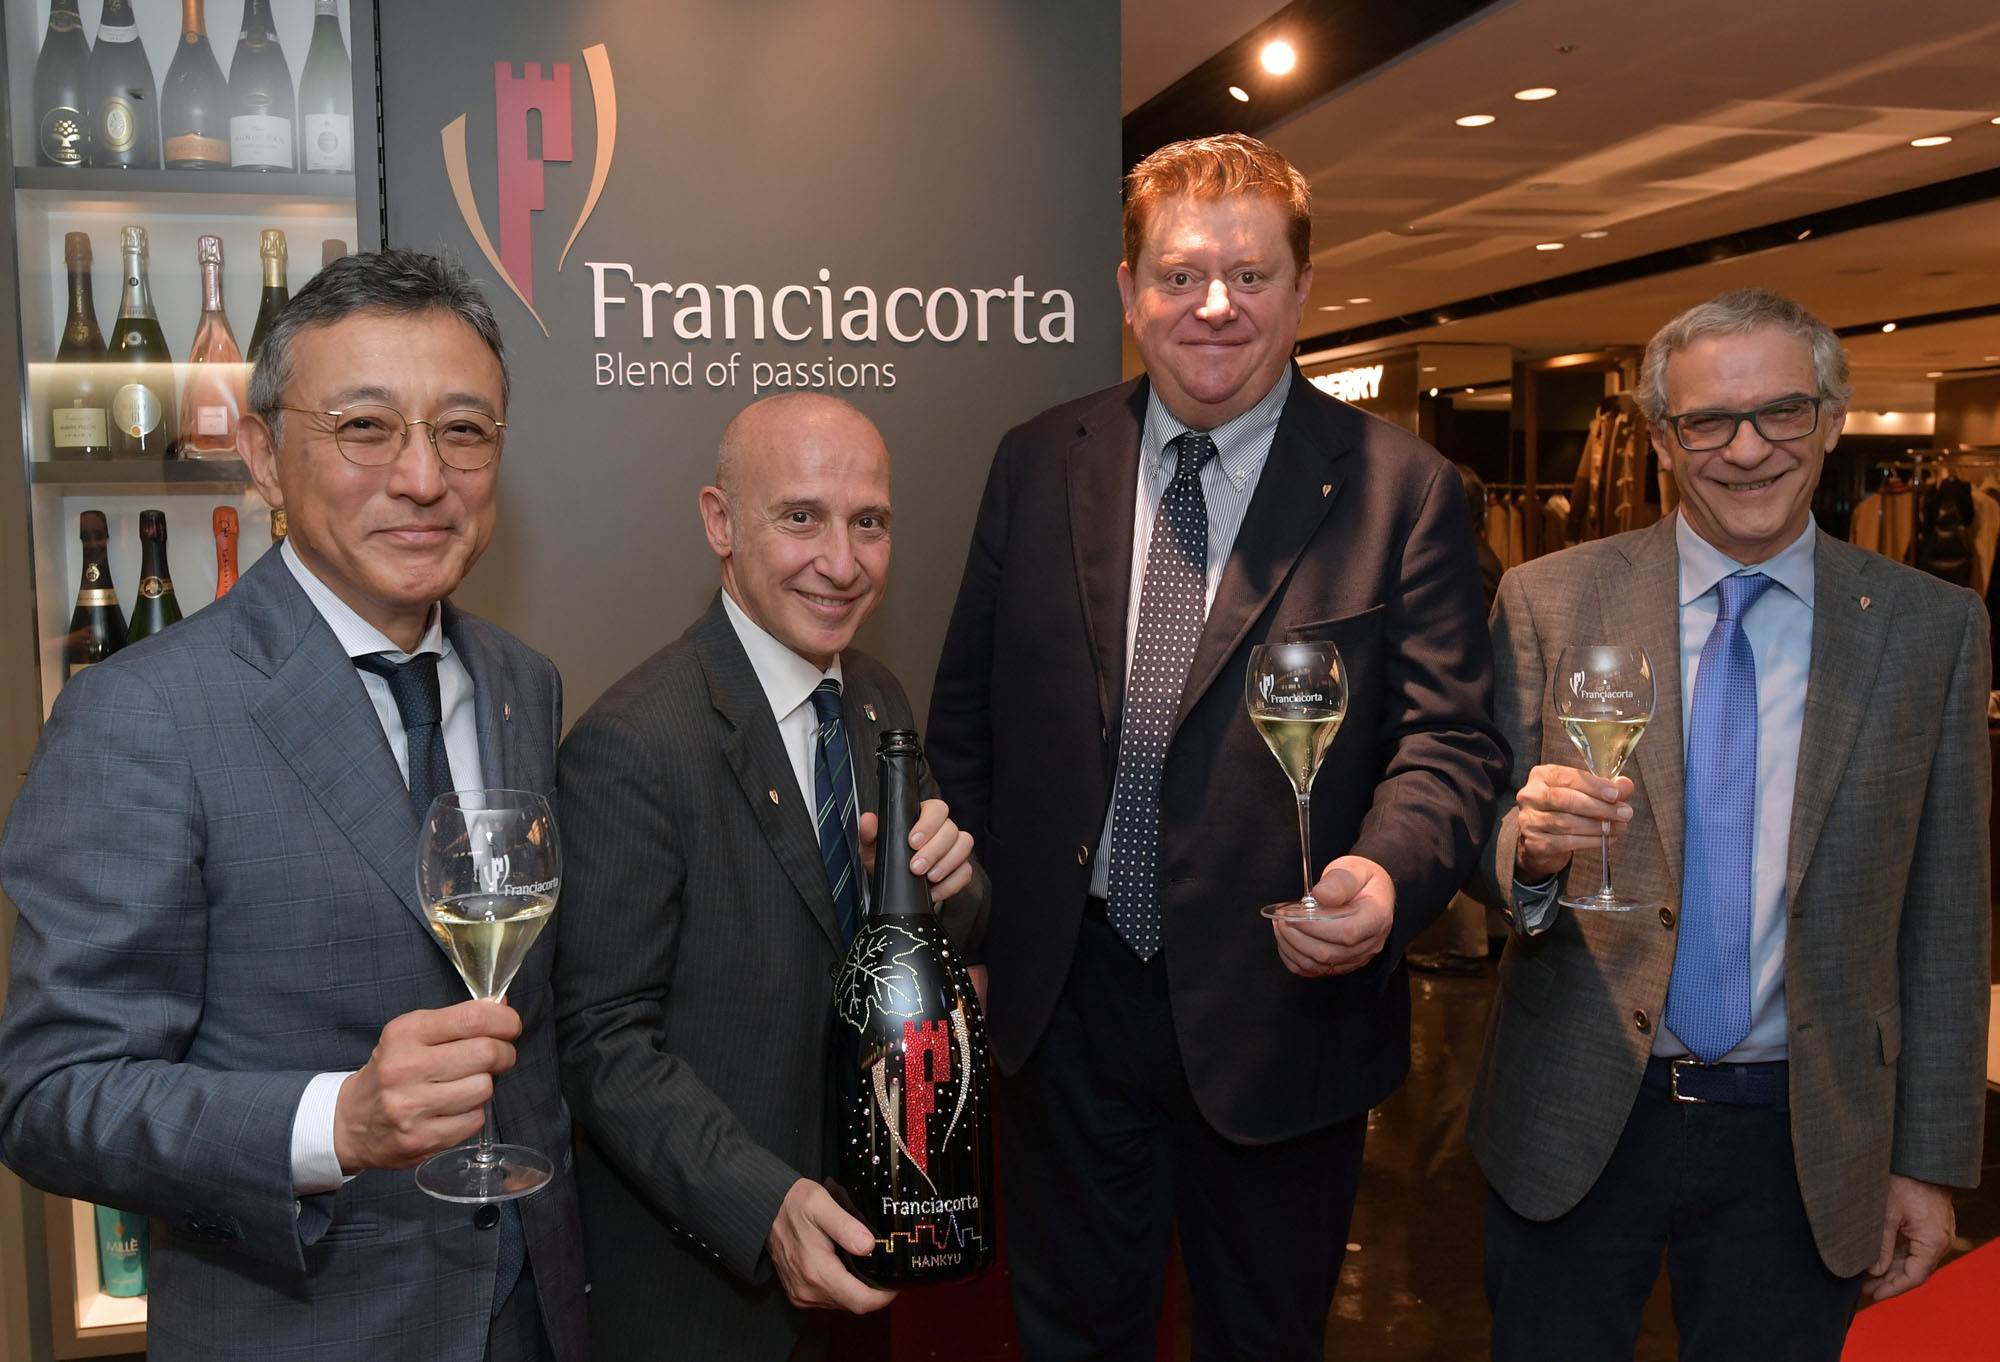 The new Chairman of the Franciacorta Association Silvano Brescianini (second from right) with, from left, Director and Managing Executive Officer of Hankyu Hanshin Department Store Co. Ltd.Norifumi Morii, Ambassador of Italy to Japan Giorgio Starace and Franciacorta Association CEO Giuseppe Salvioni during a ceremony to welcome the new chairman at Hankyu Men's Tokyo on Nov. 19. | YOSHIAKI MIURA